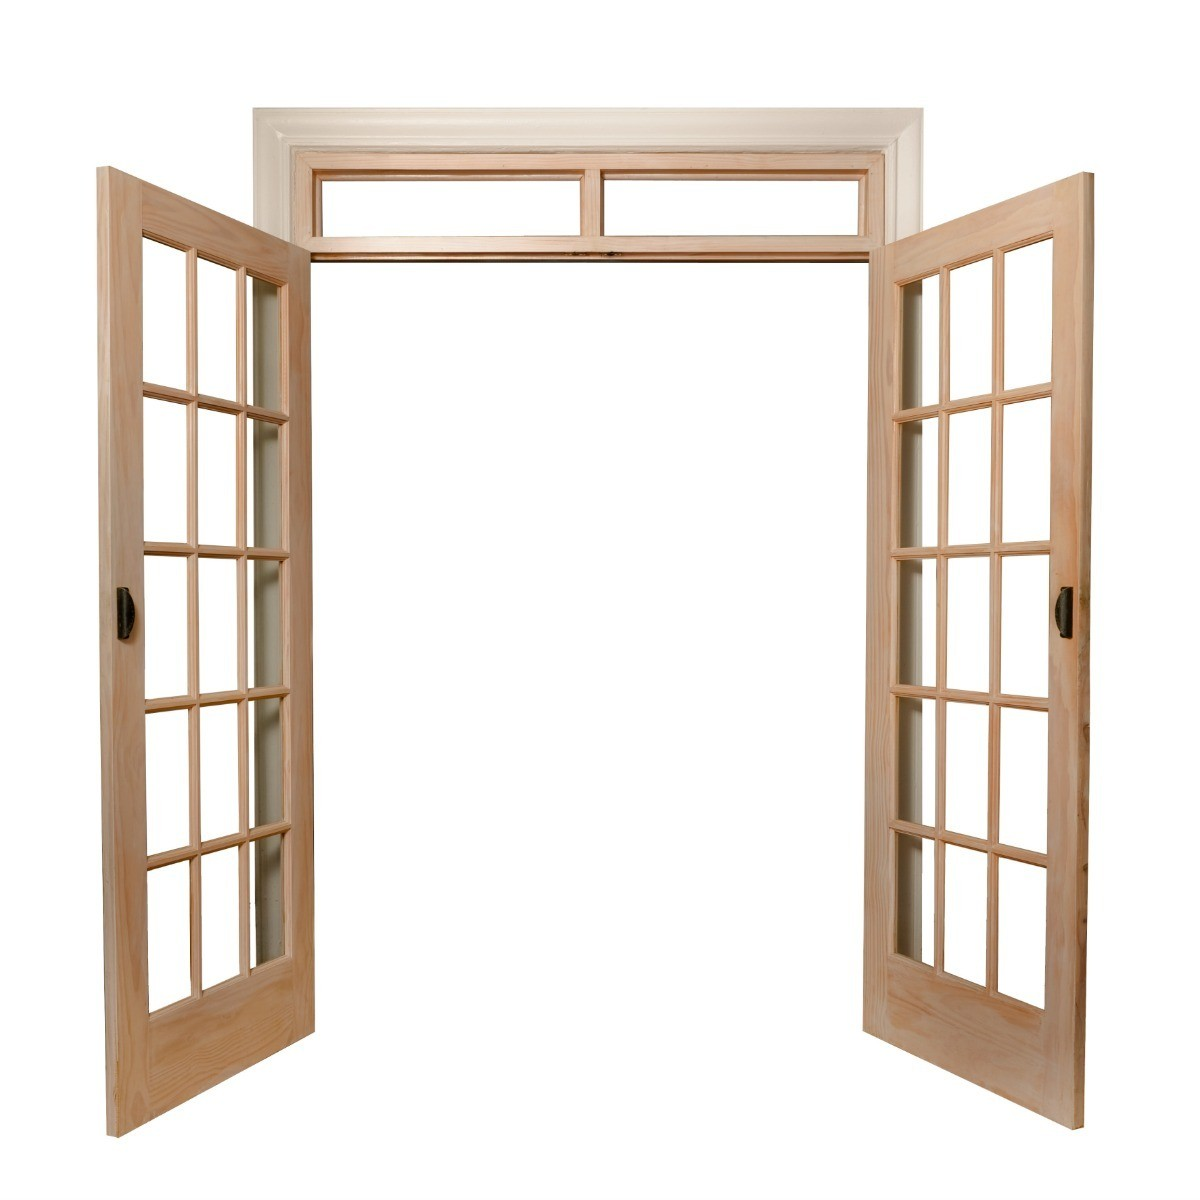 Replace Doors Inexpensive French Doors To Replace Sliding Glass Door Thriftyfun